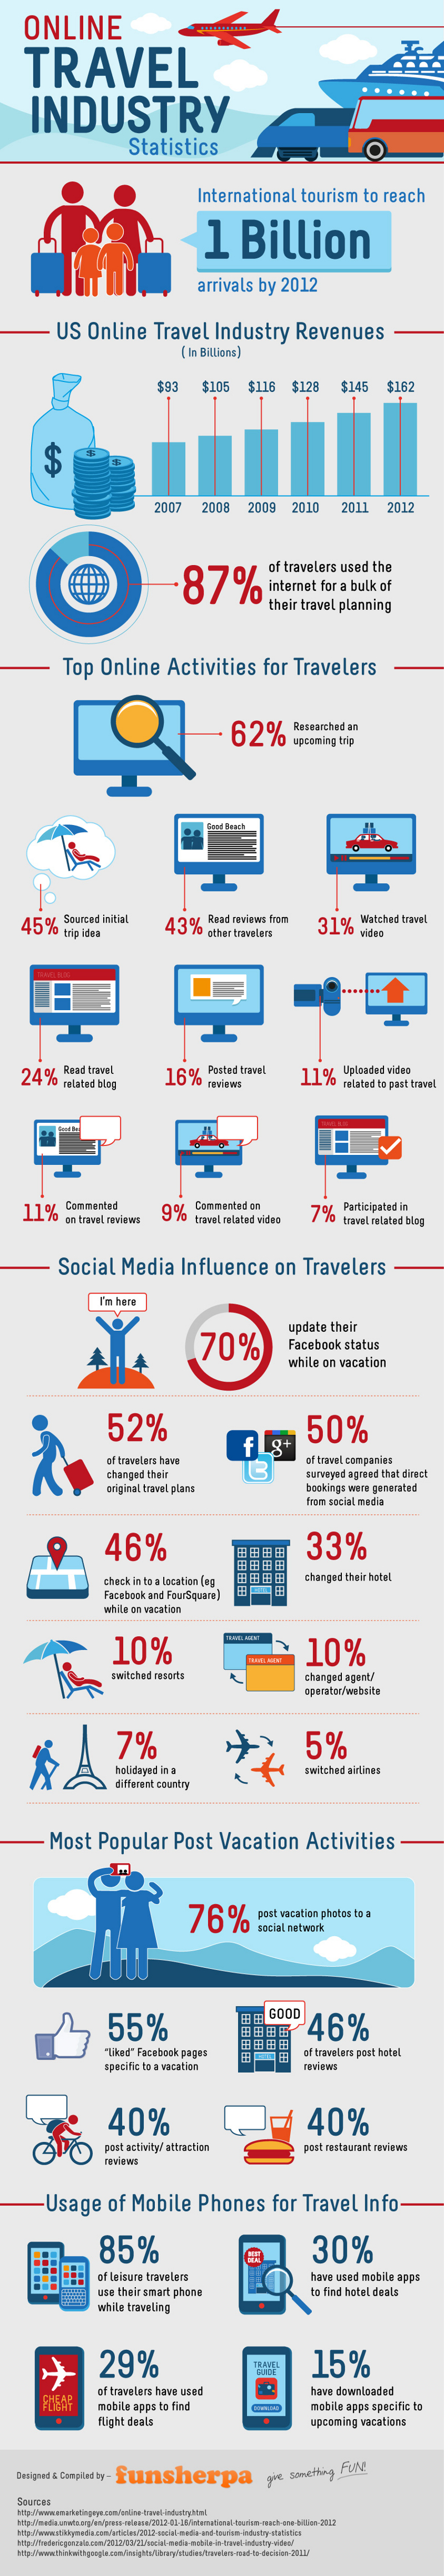 Online Travel Industry Statistics